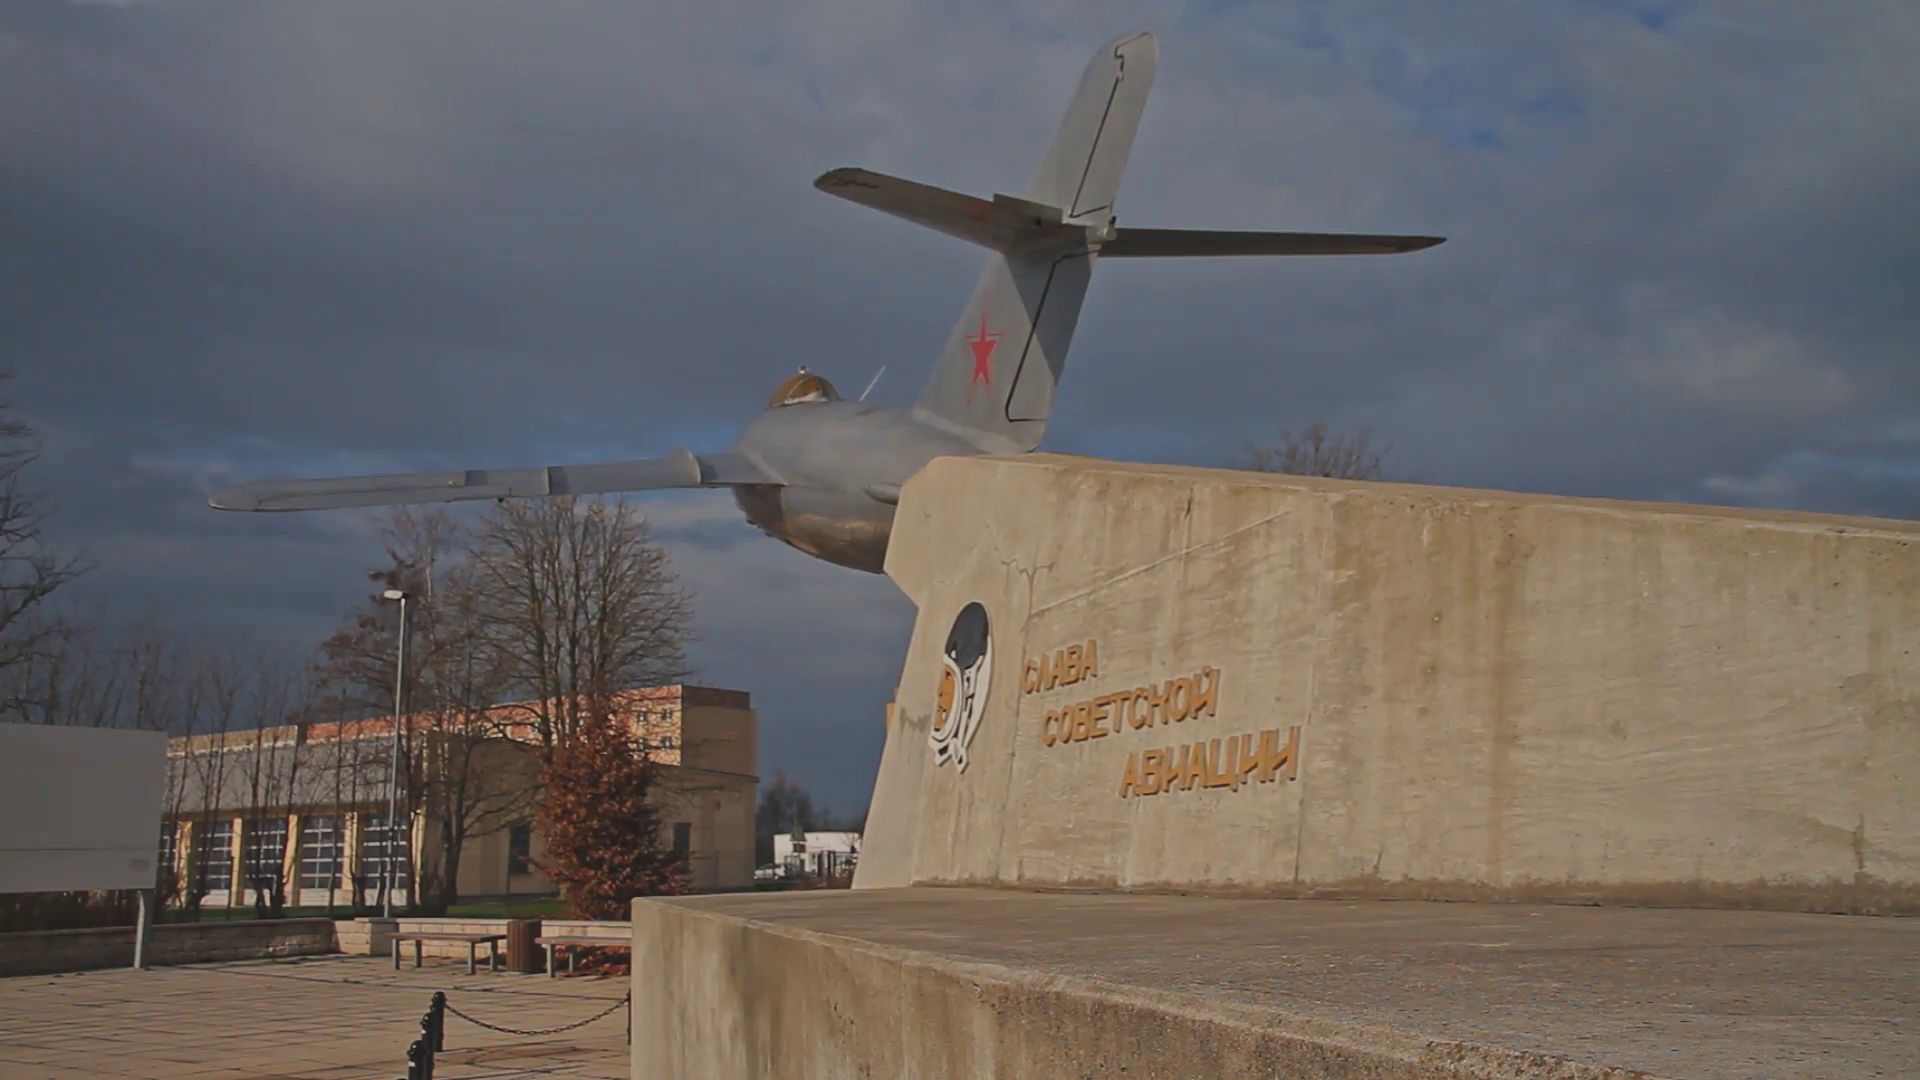 Fighter jet monument. photo